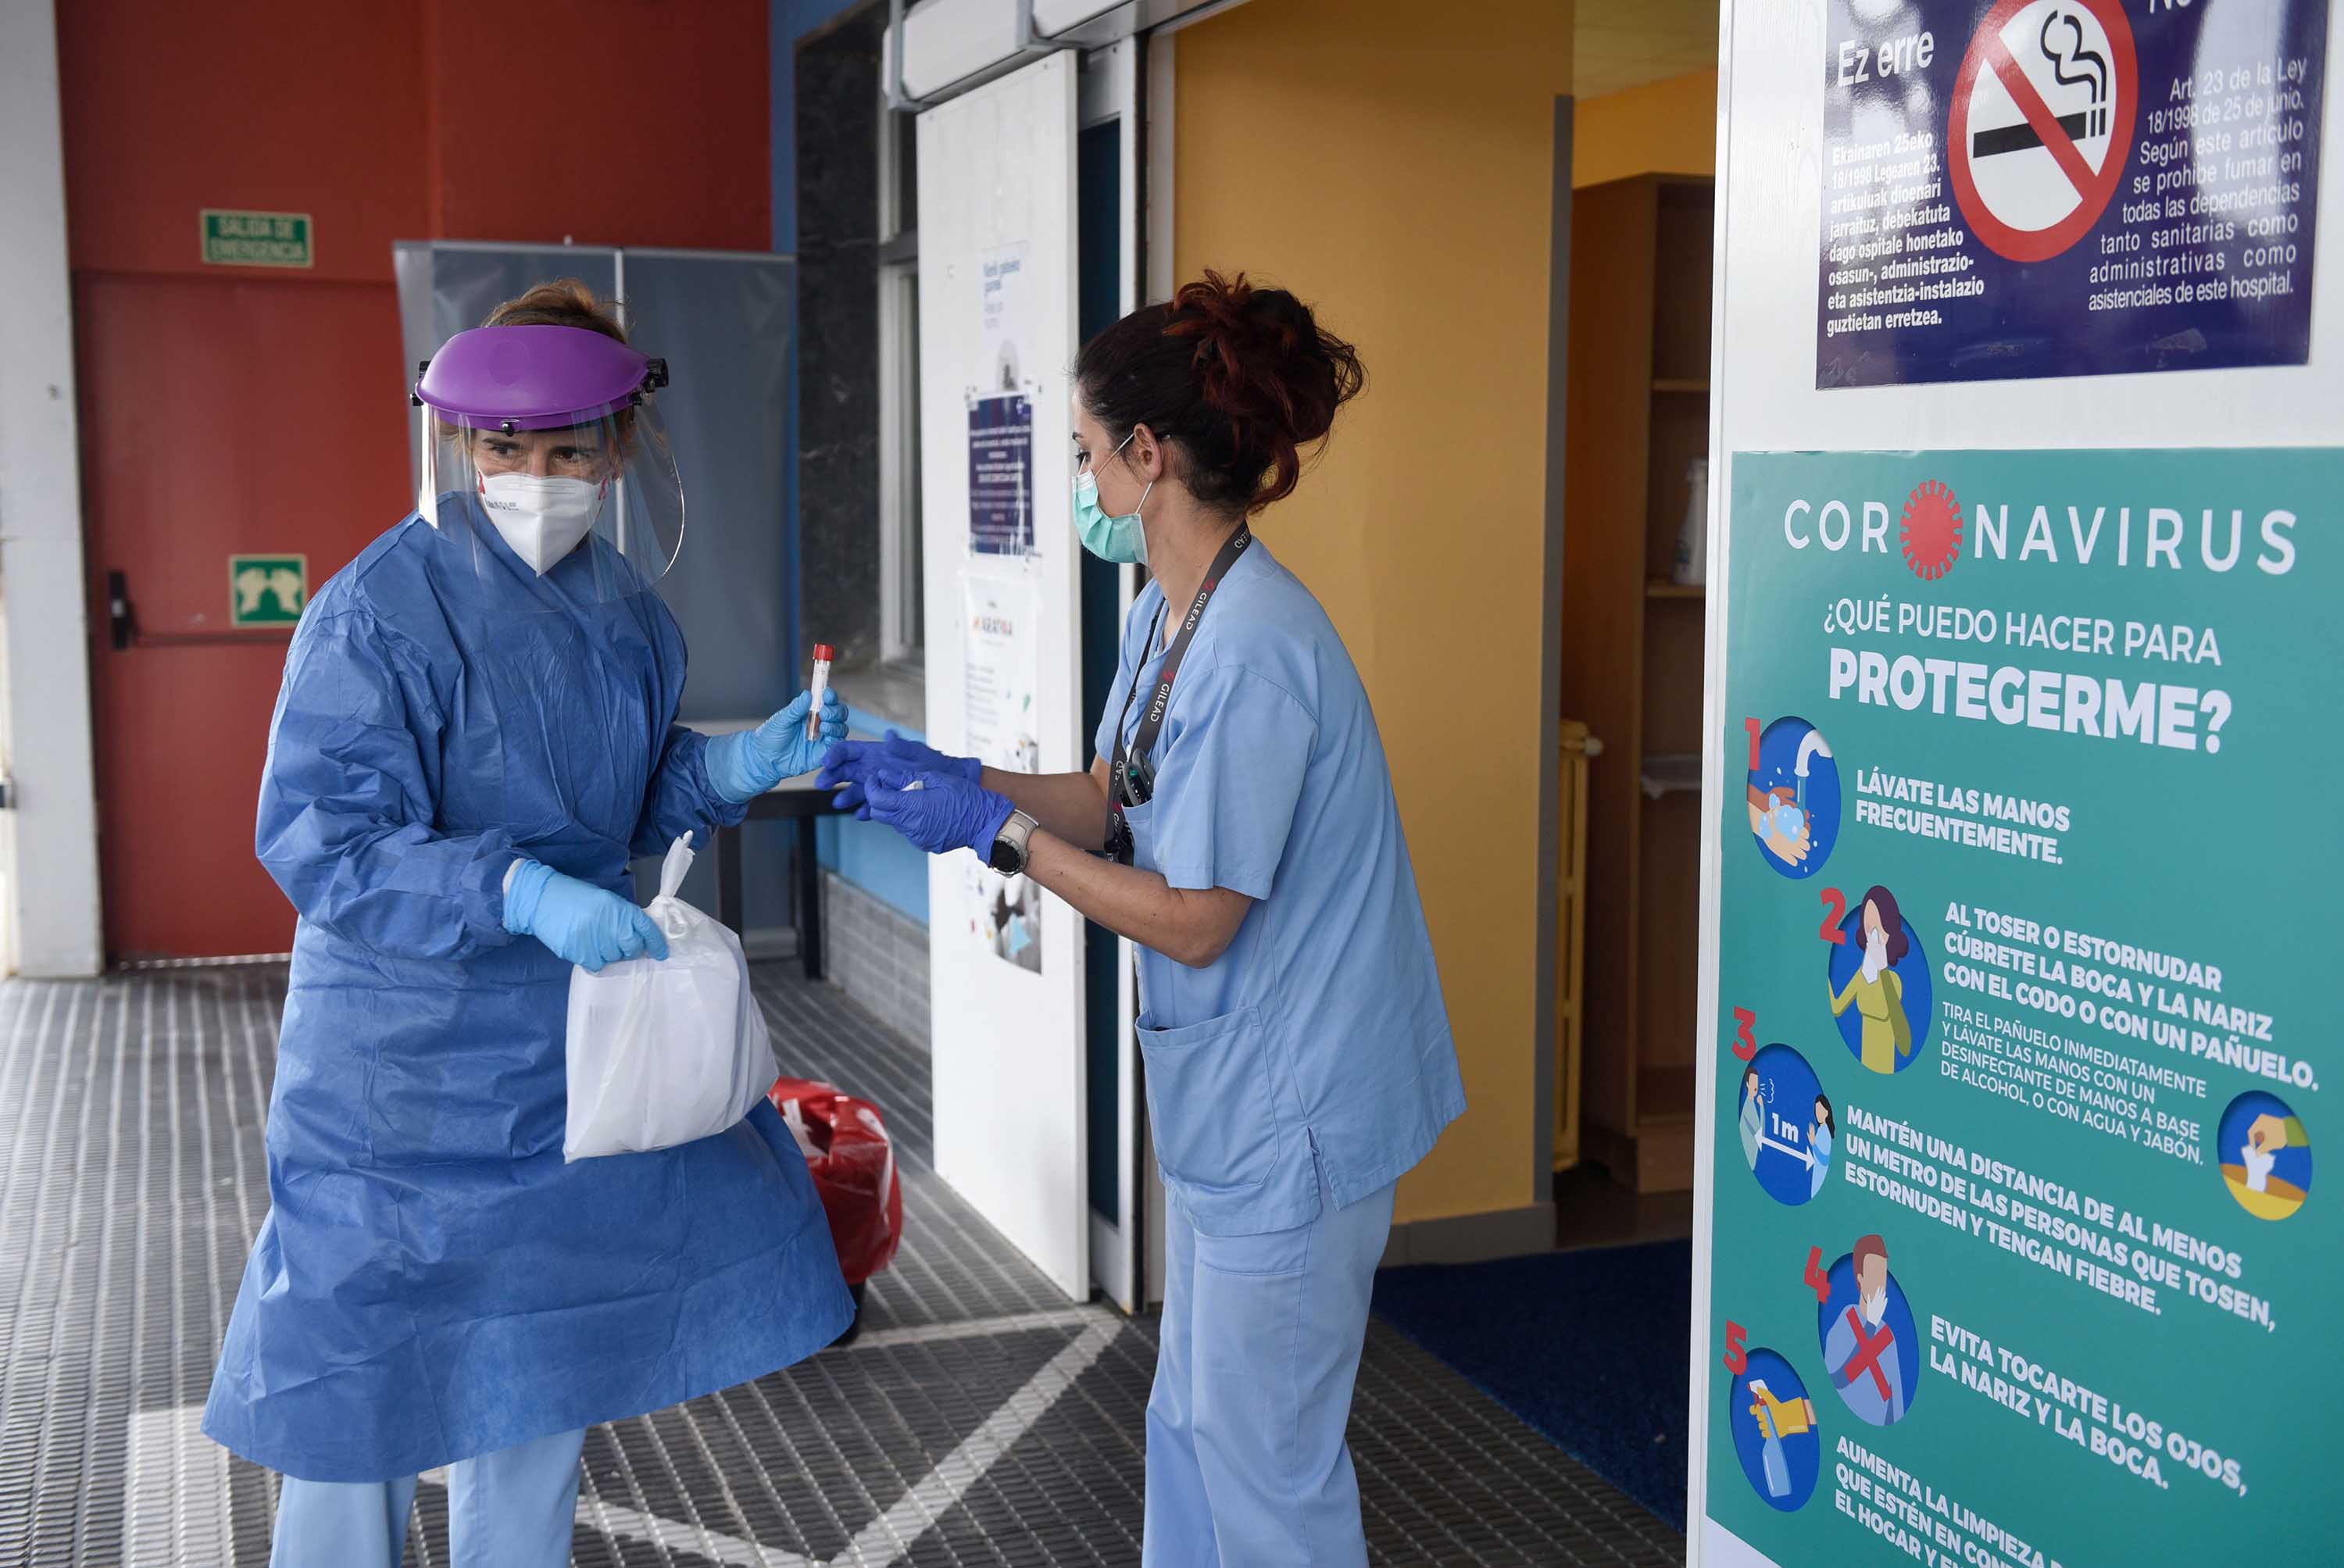 Health workers collect samples at a drive-through coronavirus testing center at Donostia Hospital in San Sebastian, Spain, on March 25.